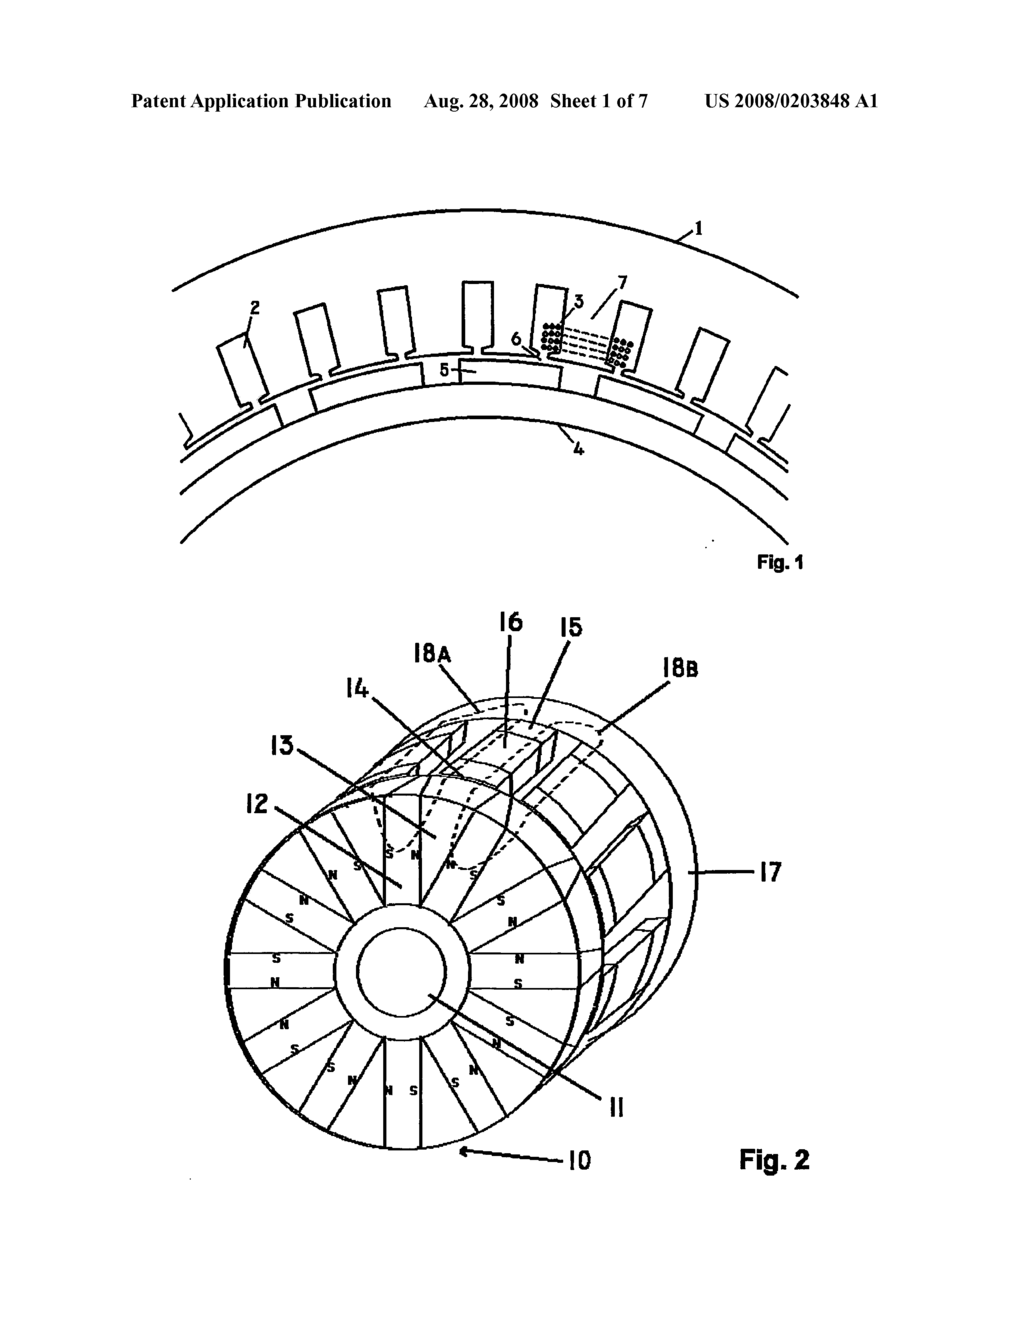 Large Generator Stator Diagram Trusted Wiring Diagrams Electrical Motor Having A Number Of Pole Cores Outrunner 9